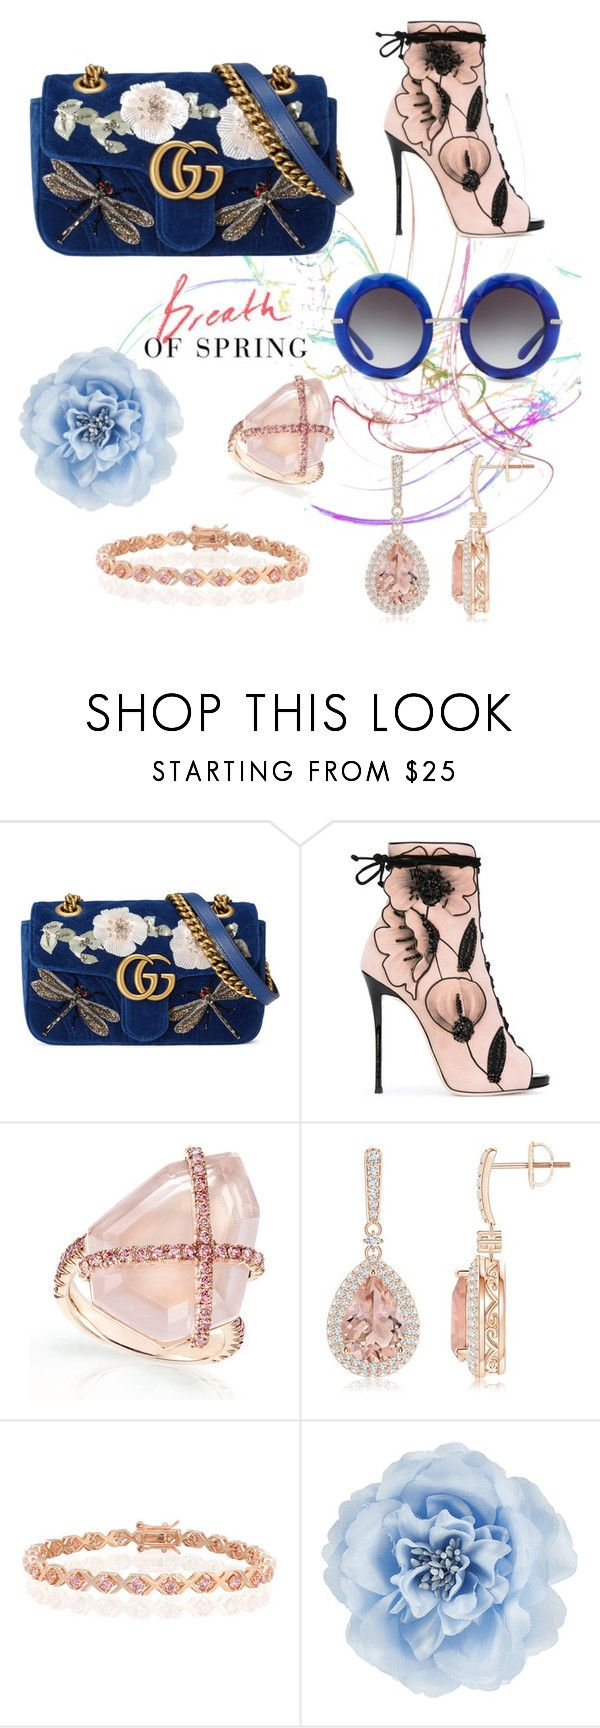 """Breath of Spring"" by nerdygets on Polyvore featuring Gucci, Giuseppe Zanotti, Bling Jewelry, Monsoon and Dolce&Gabbana"